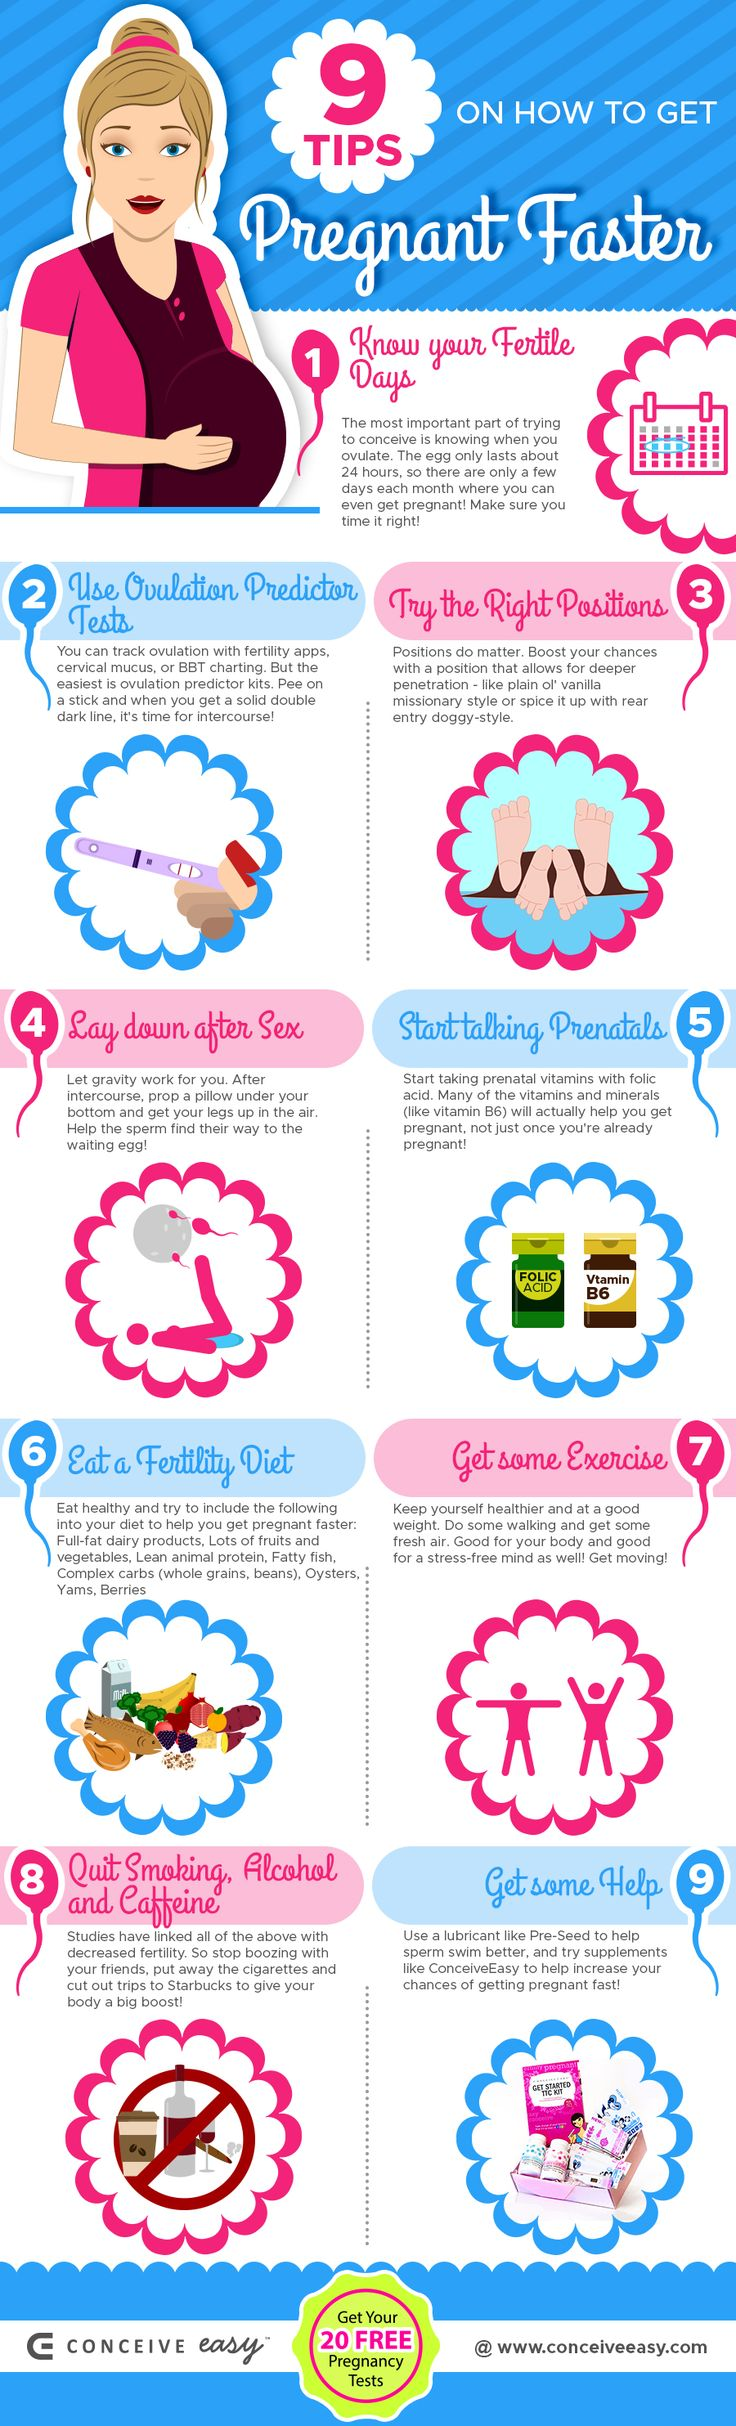 9 Tips on How to Get Pregnant Faster Infographic